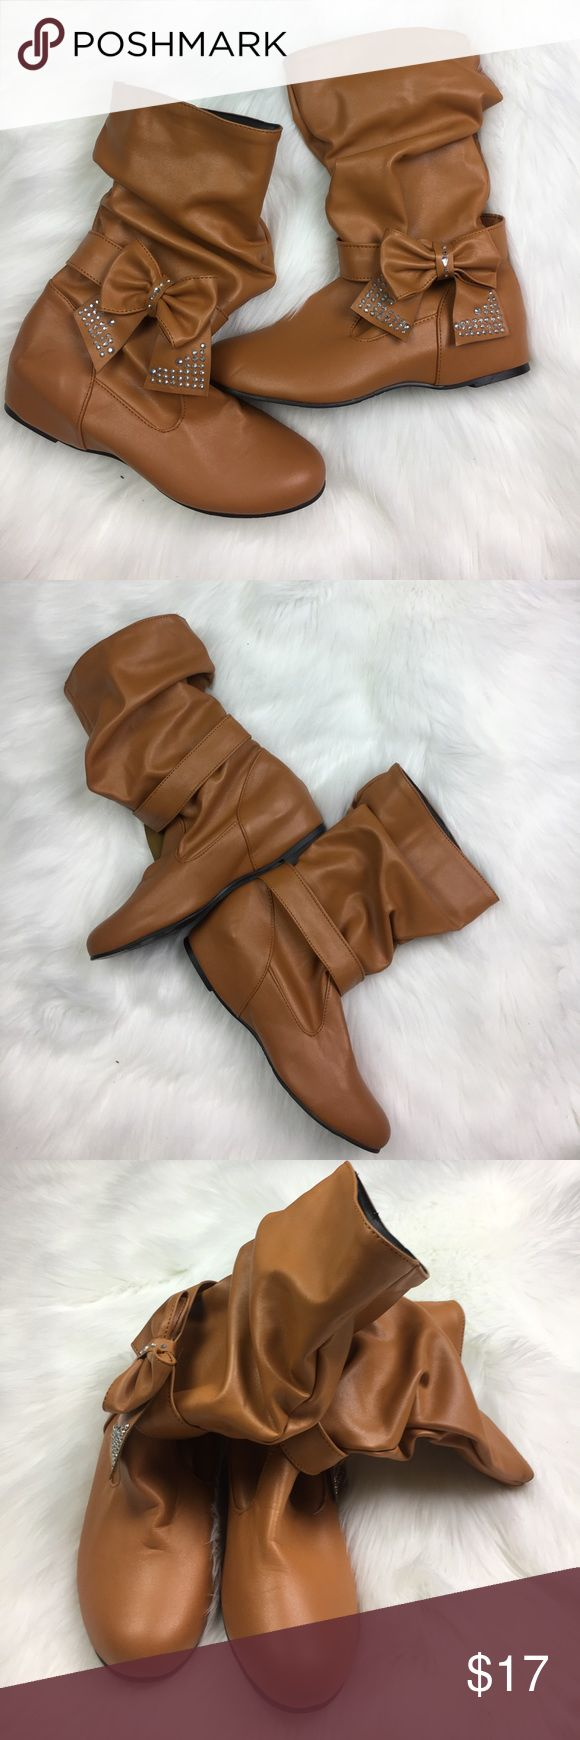 Women's Tan Slouch Boots Bow Rhinestones Shoes • Euro sz 43 = sz 9 1/2 us • 1 Inch hidden wedge • See photos to rate condition • The bows slip off Shoes Ankle Boots & Booties